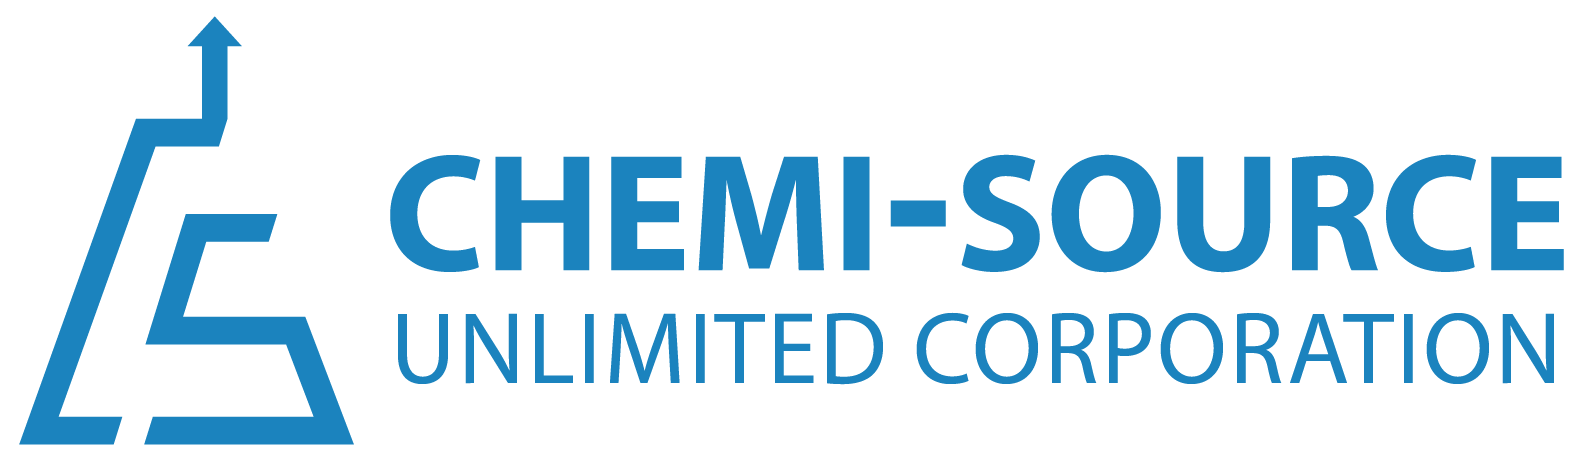 Chemi-Source Unlimited Corporation